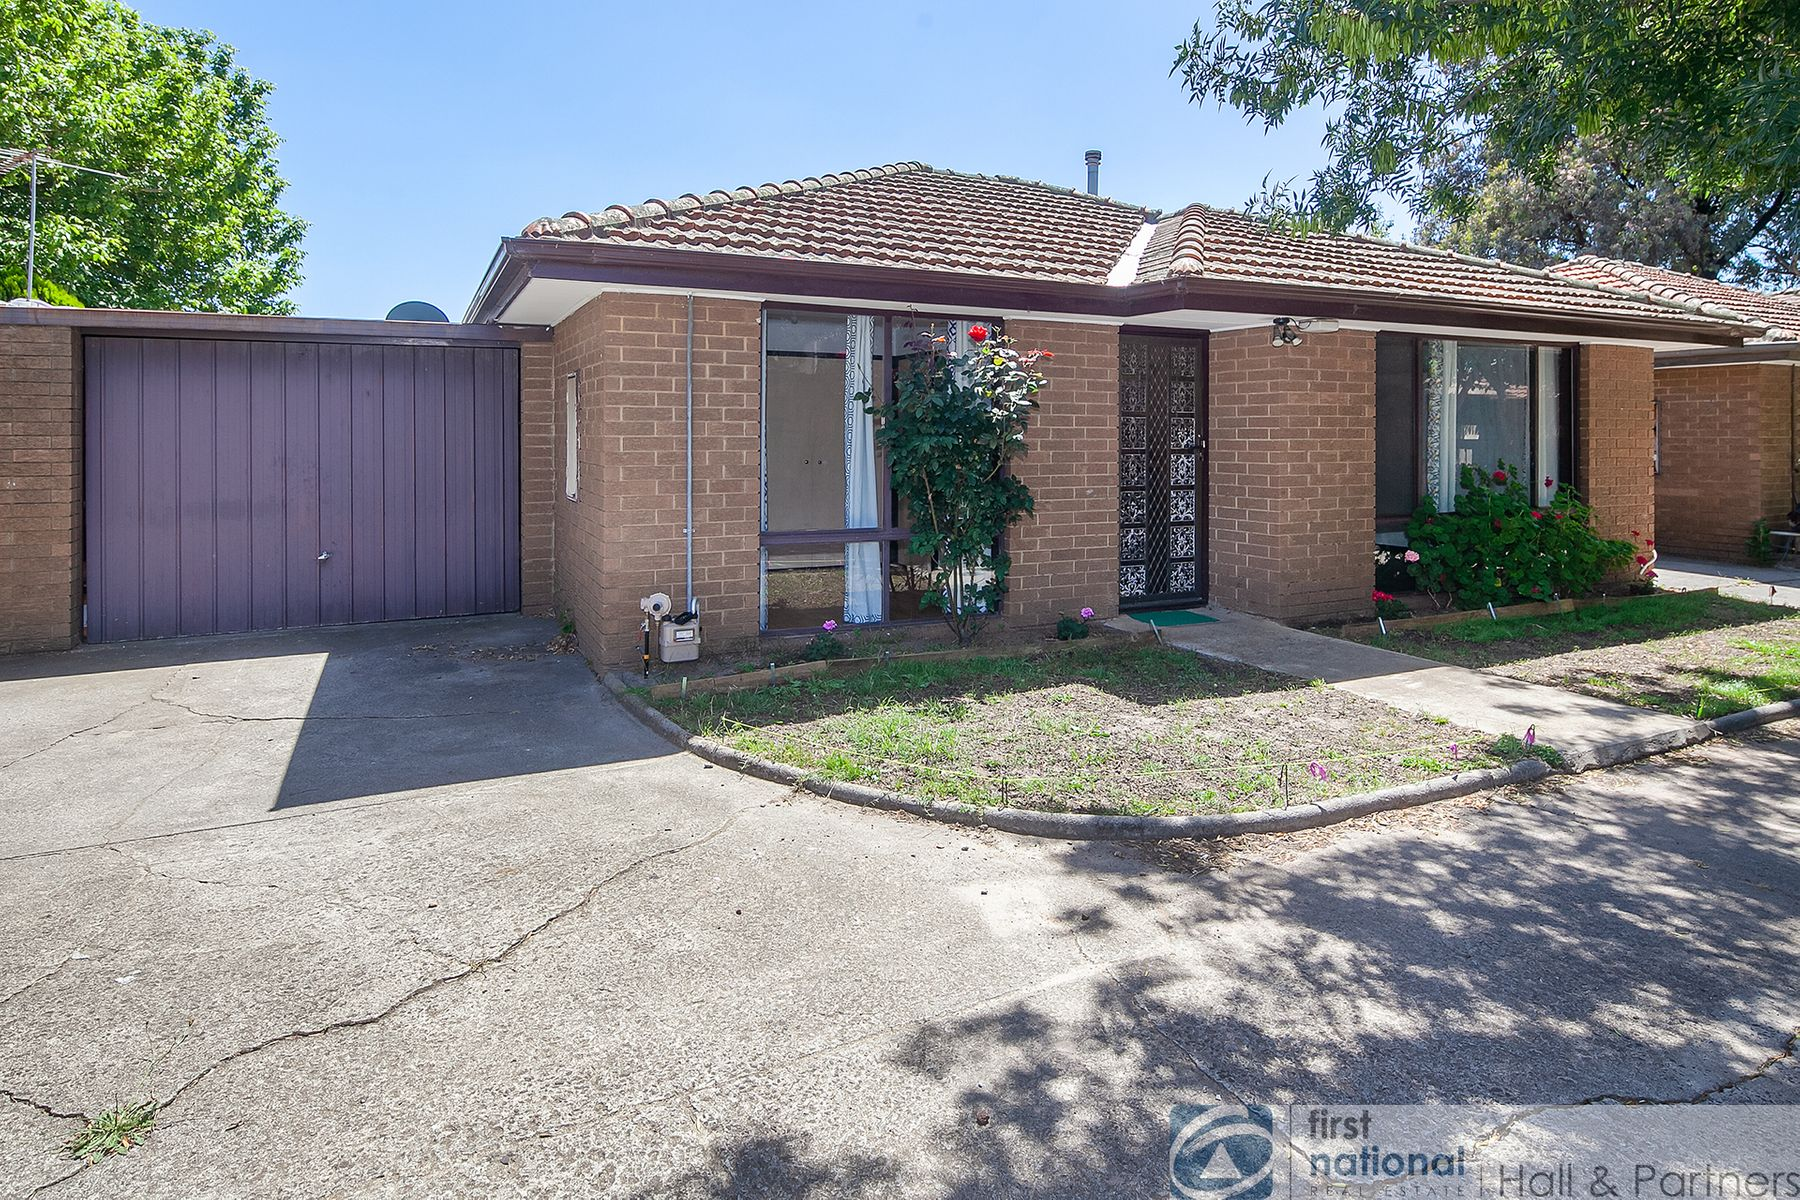 3/34 Hammond Road, Dandenong, VIC 3175